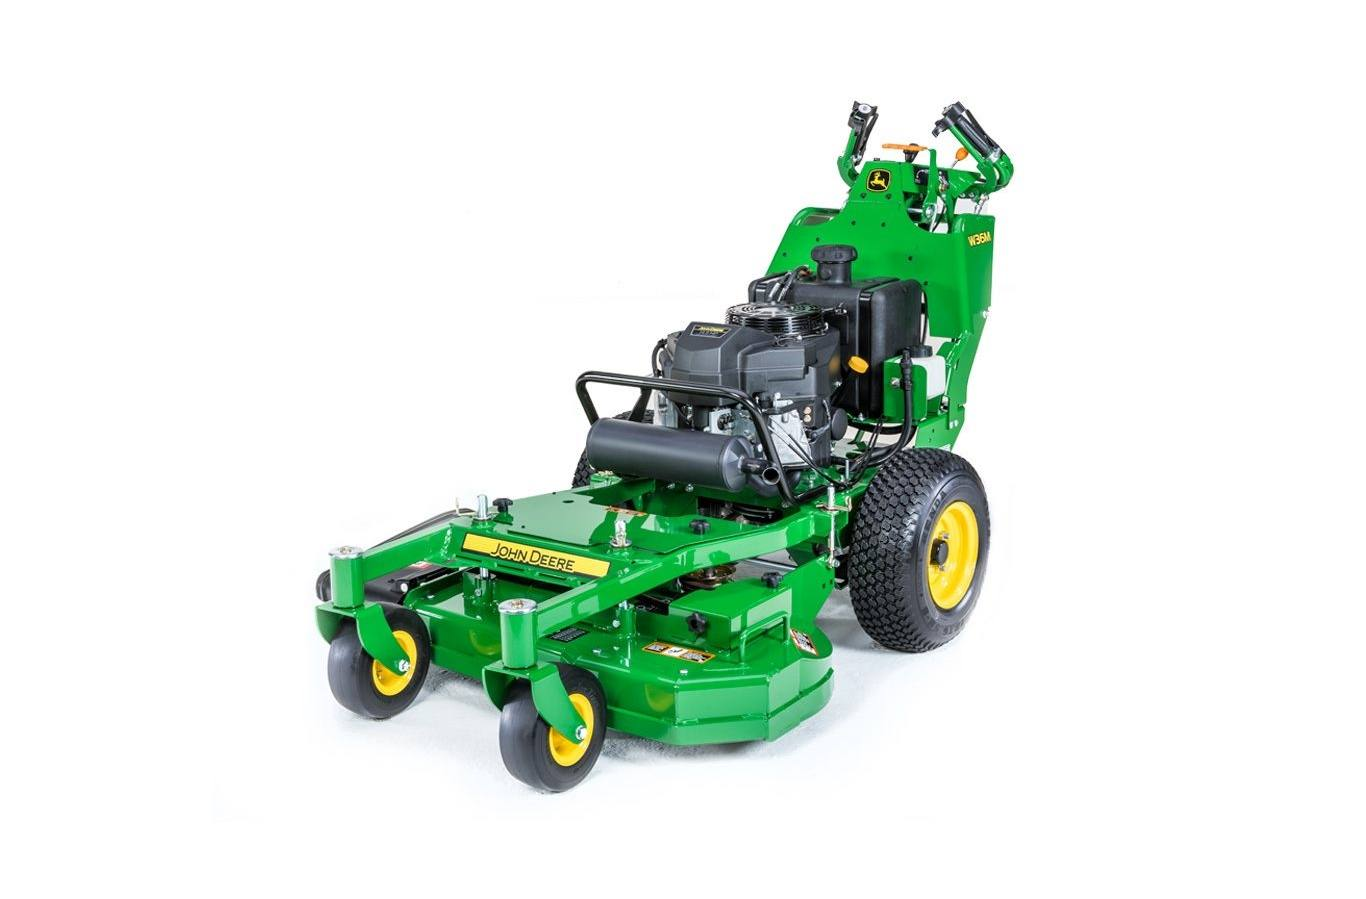 2019 John Deere W36m For Sale In Portsmouth Oh Gampps Lawn Equipment Portsmouth Oh 866 776 2362